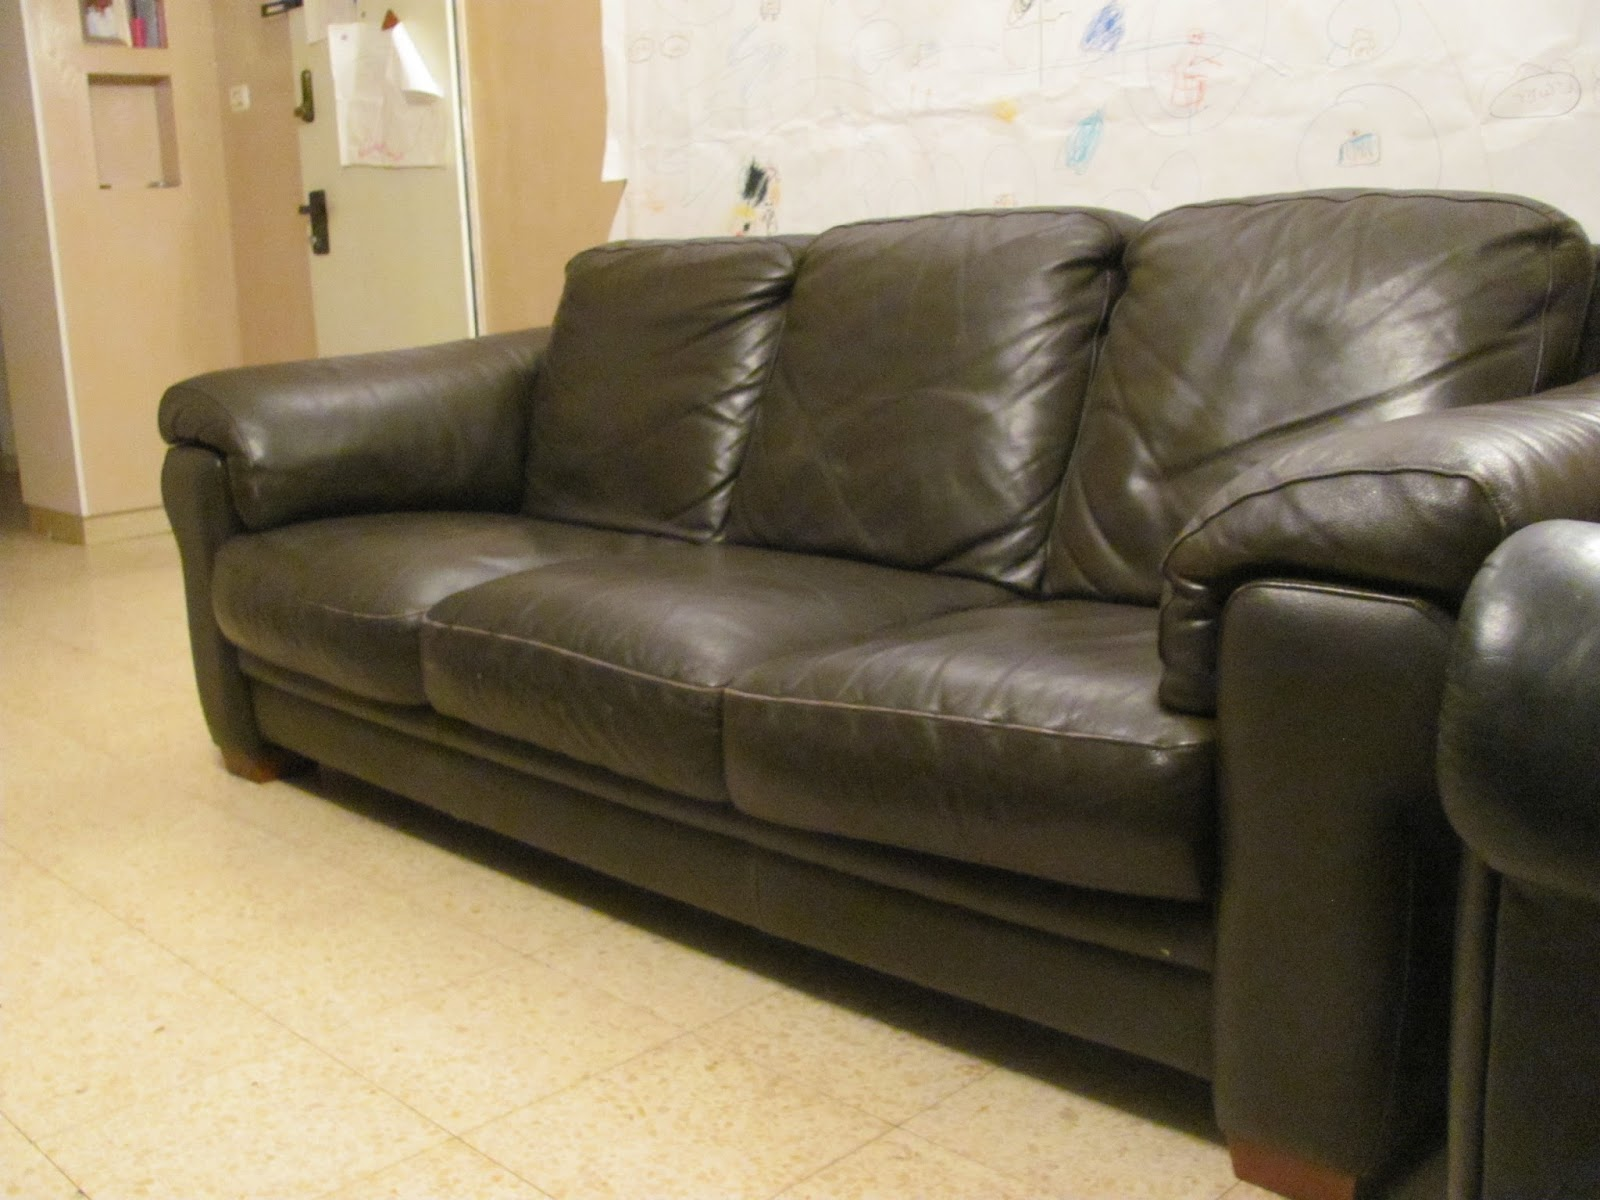 Brown Leather Sofas Italian Comfortable And Nice Price Reduced